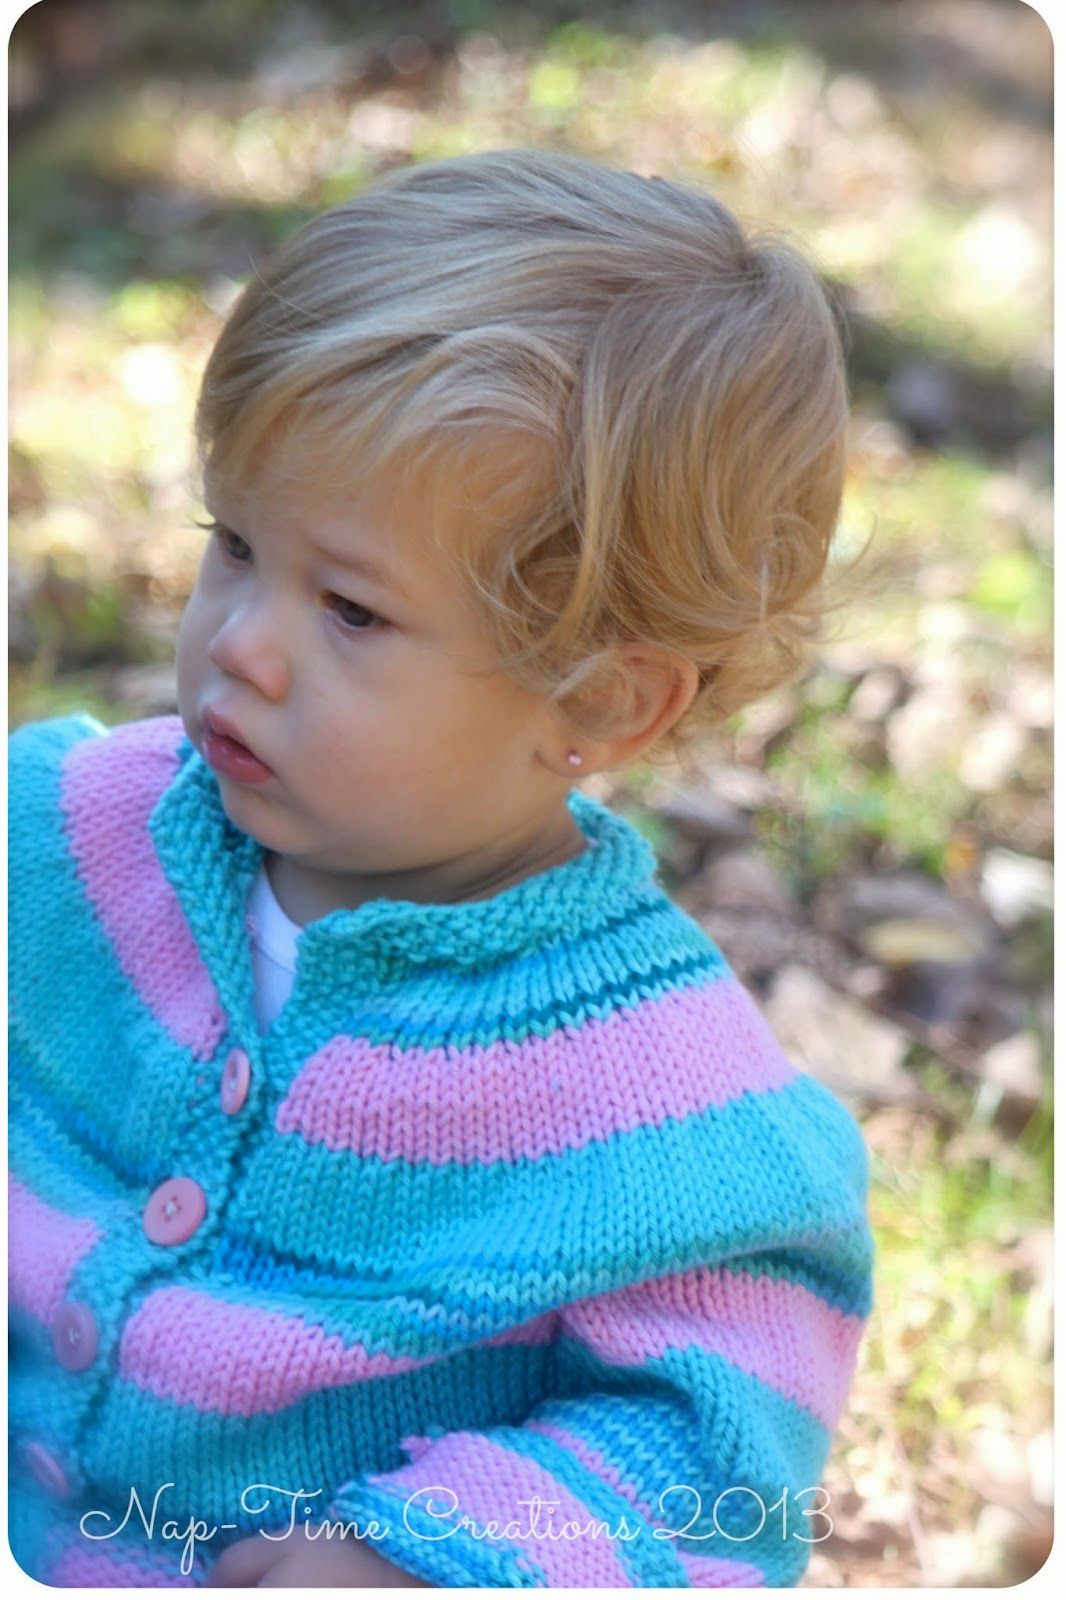 Baby Sweaters Free Knitting Patterns - Nap-time Creations | crochet ...